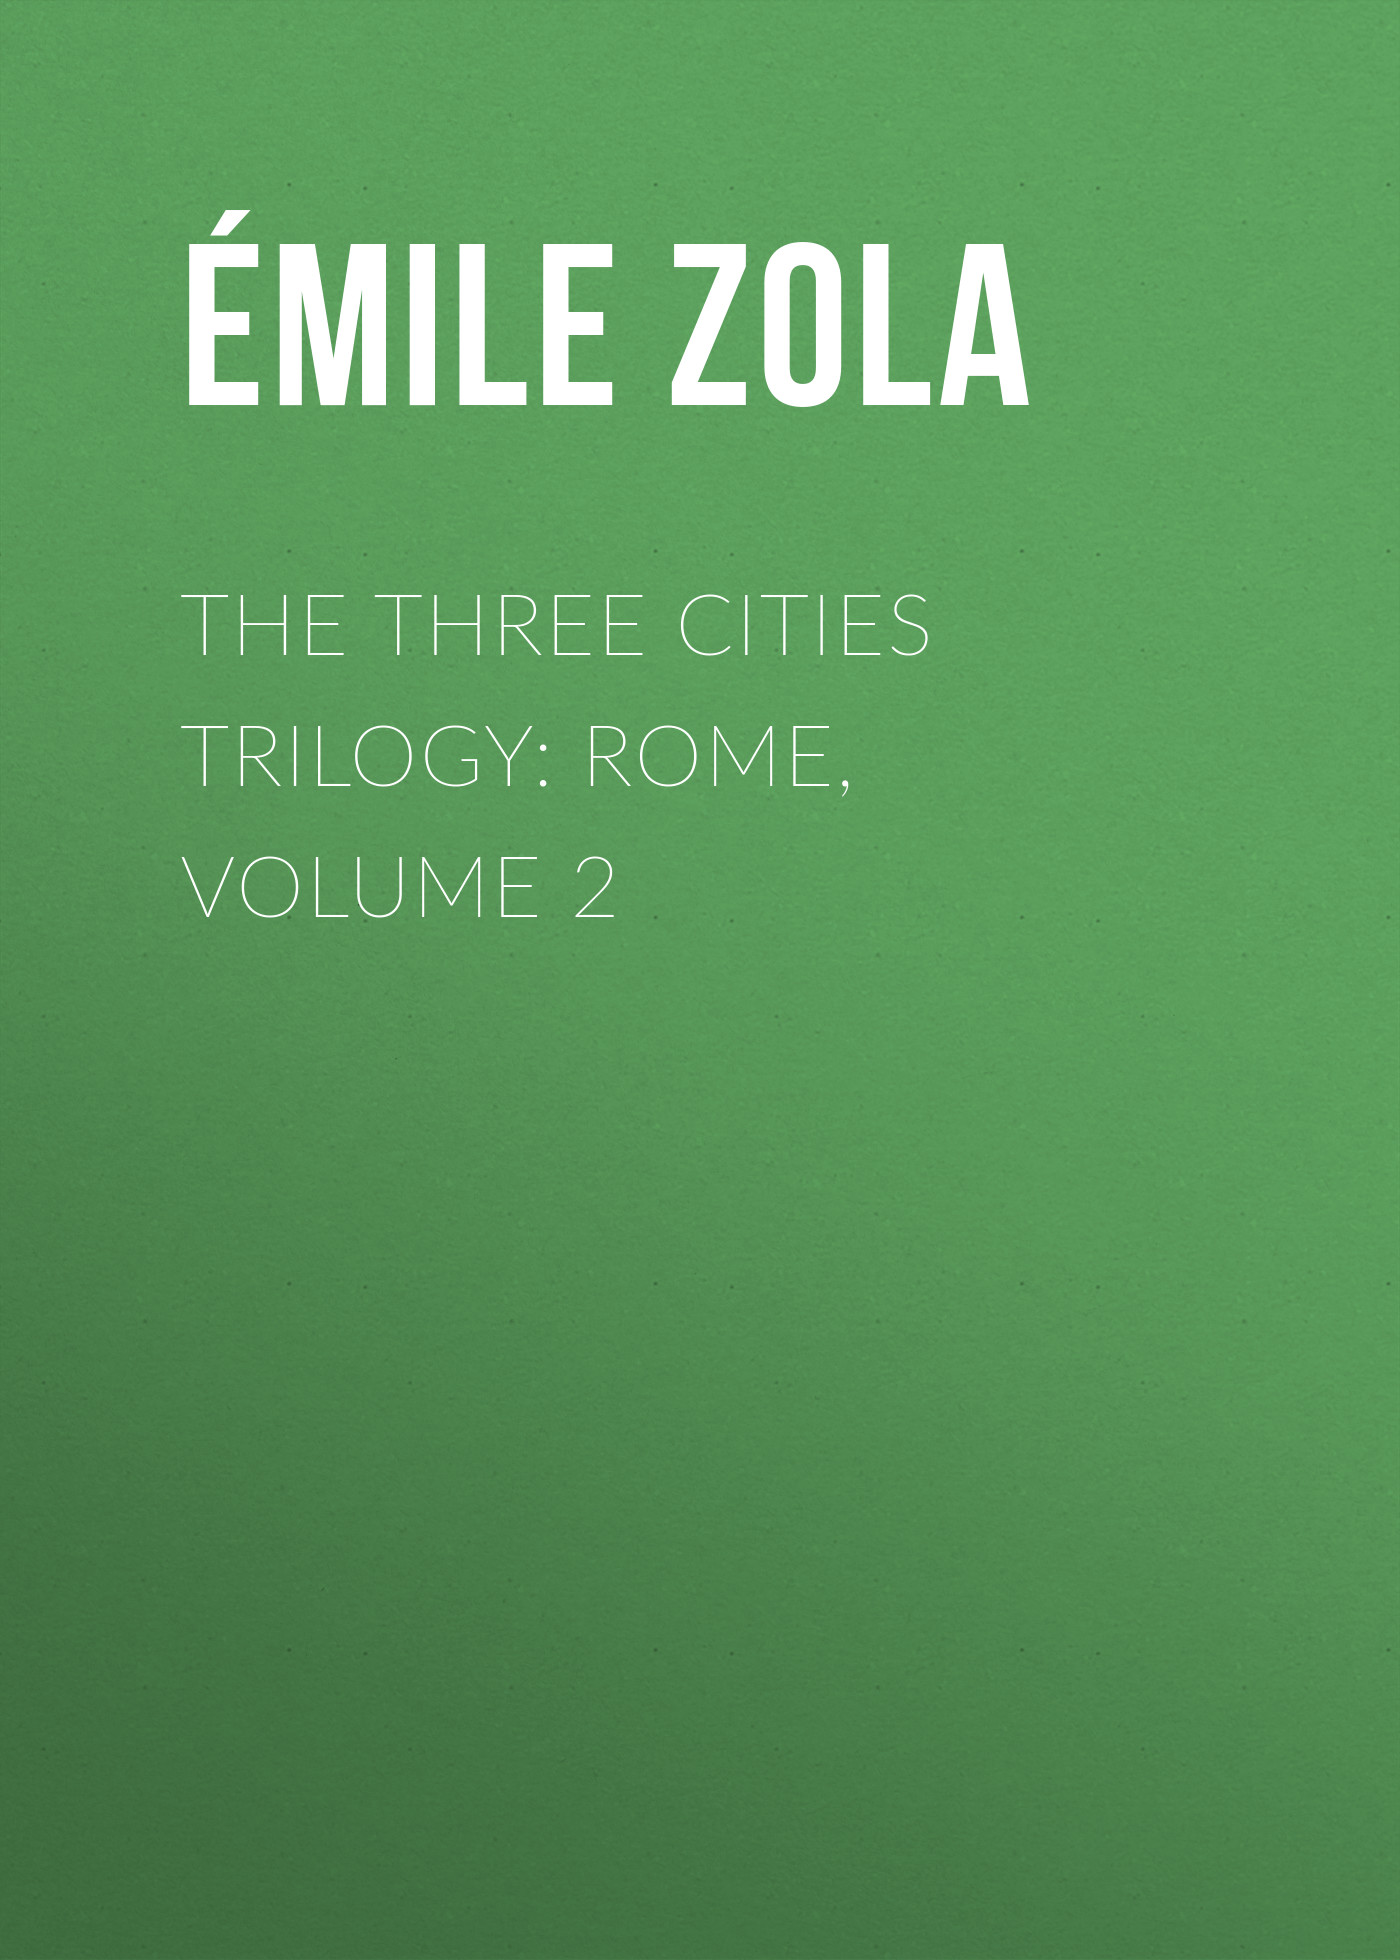 The Three Cities Trilogy: Rome, Volume 2